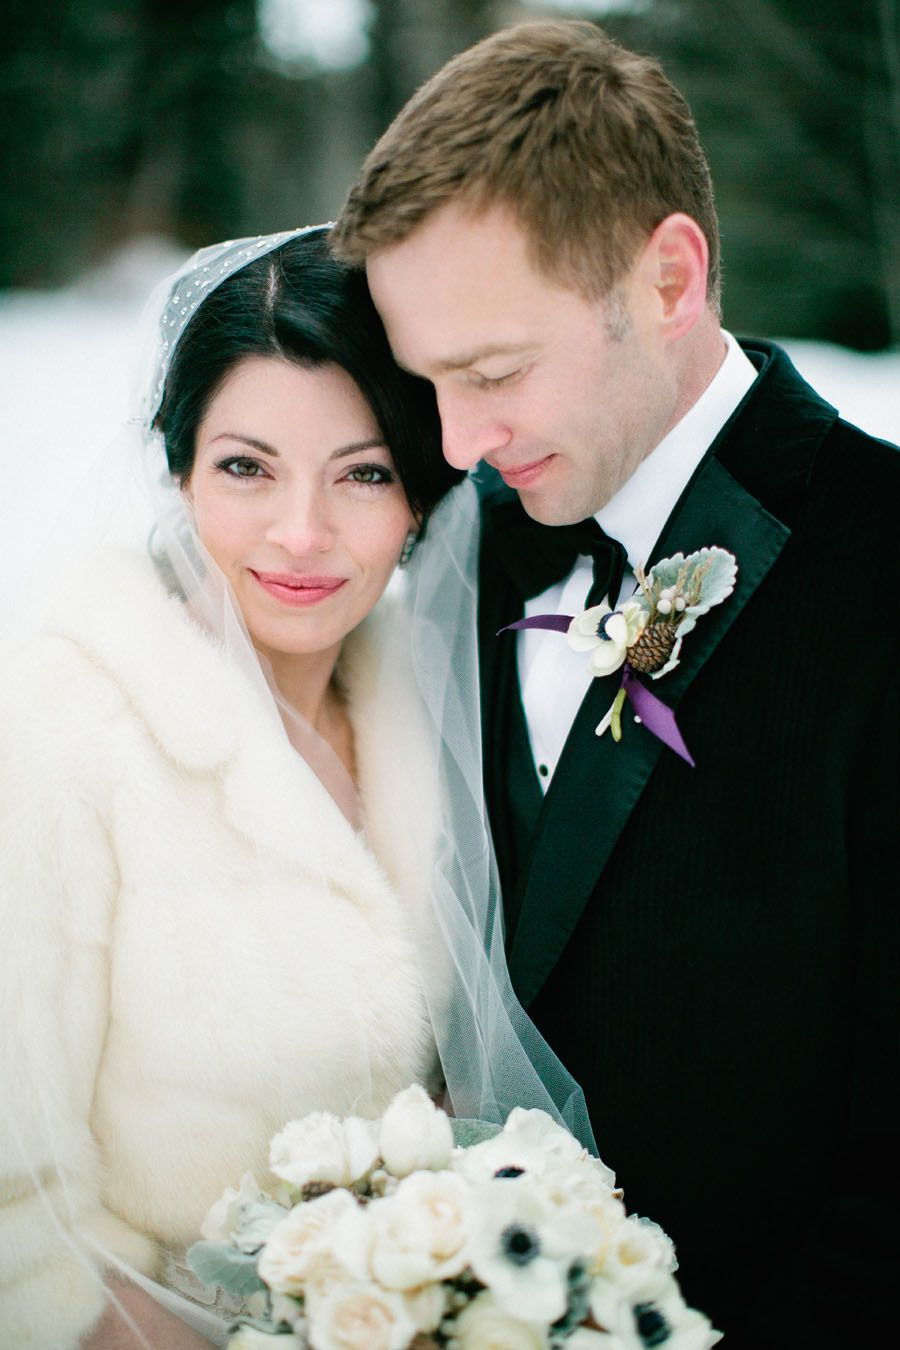 Bride & Groom Style for a Winter Wedding Date! White faux fur coat on the bride.